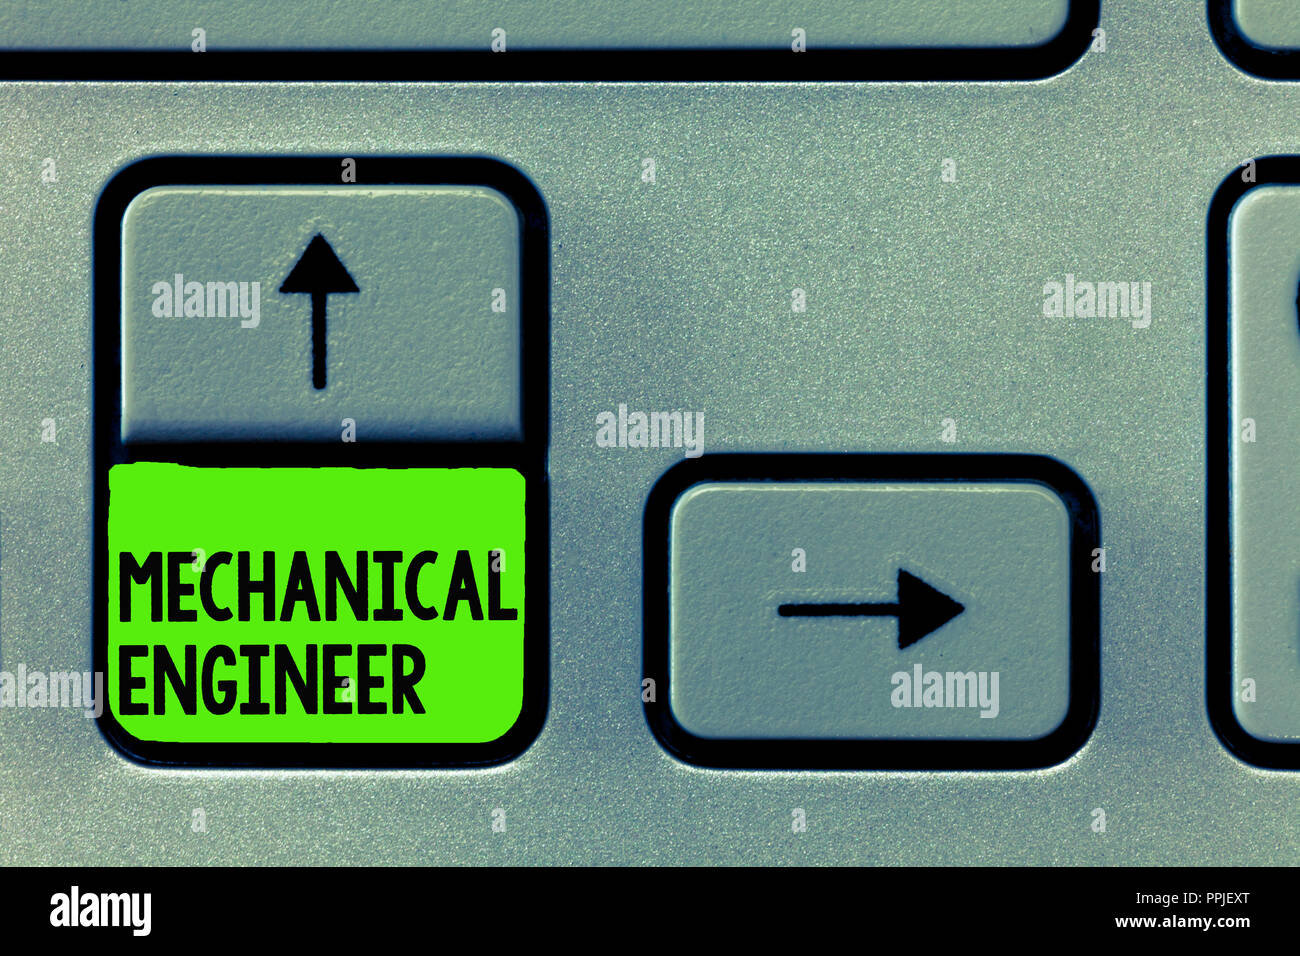 Mechanical System Stock Photos Amp Mechanical System Stock Images